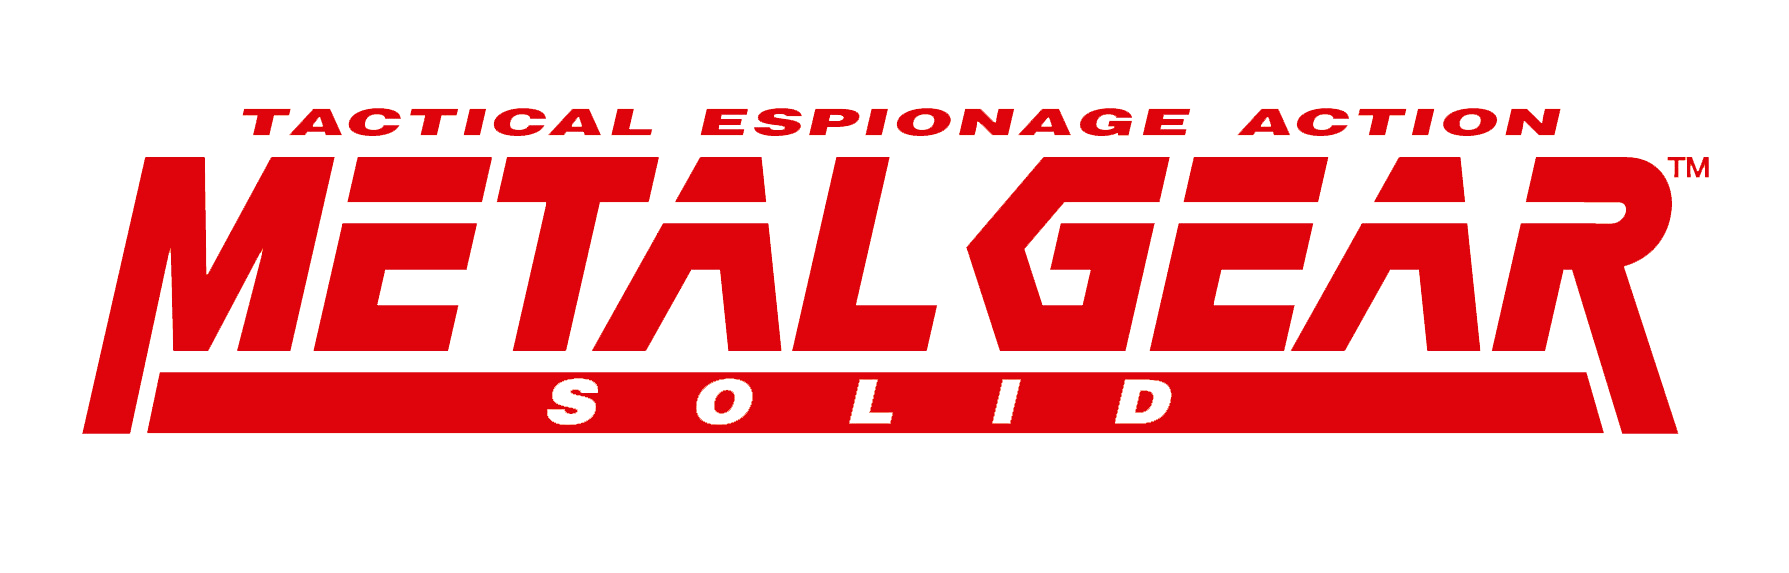 The logo of Metal Gear Solid